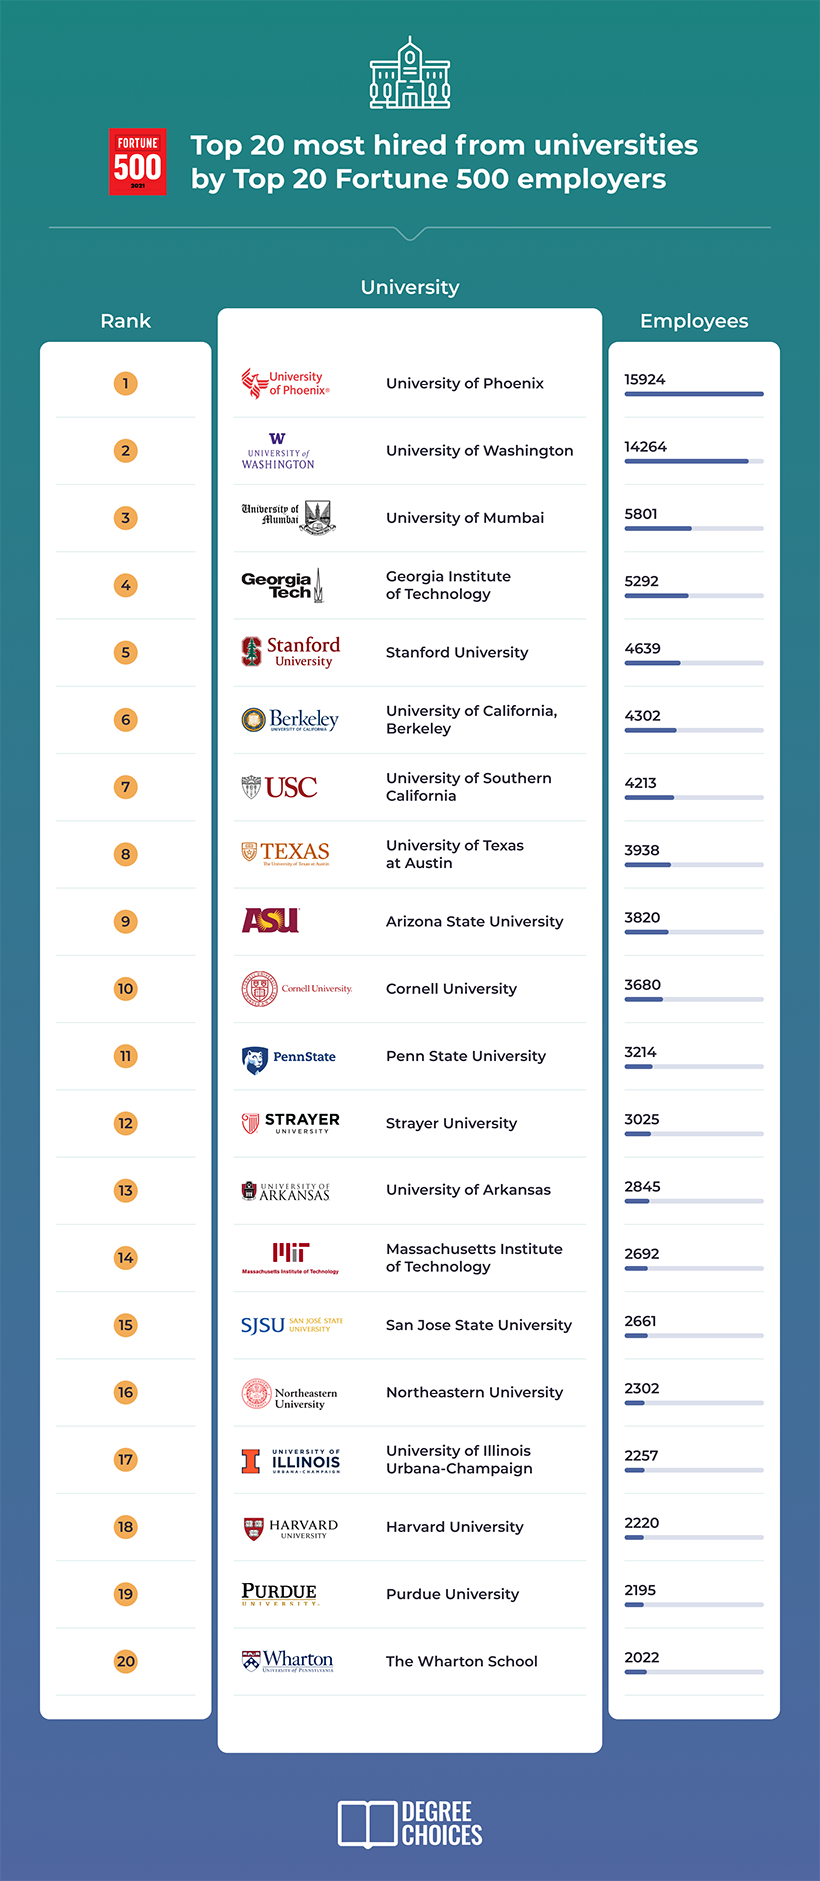 Top 20 most hired from universities by top 20 fortune 500 employers.